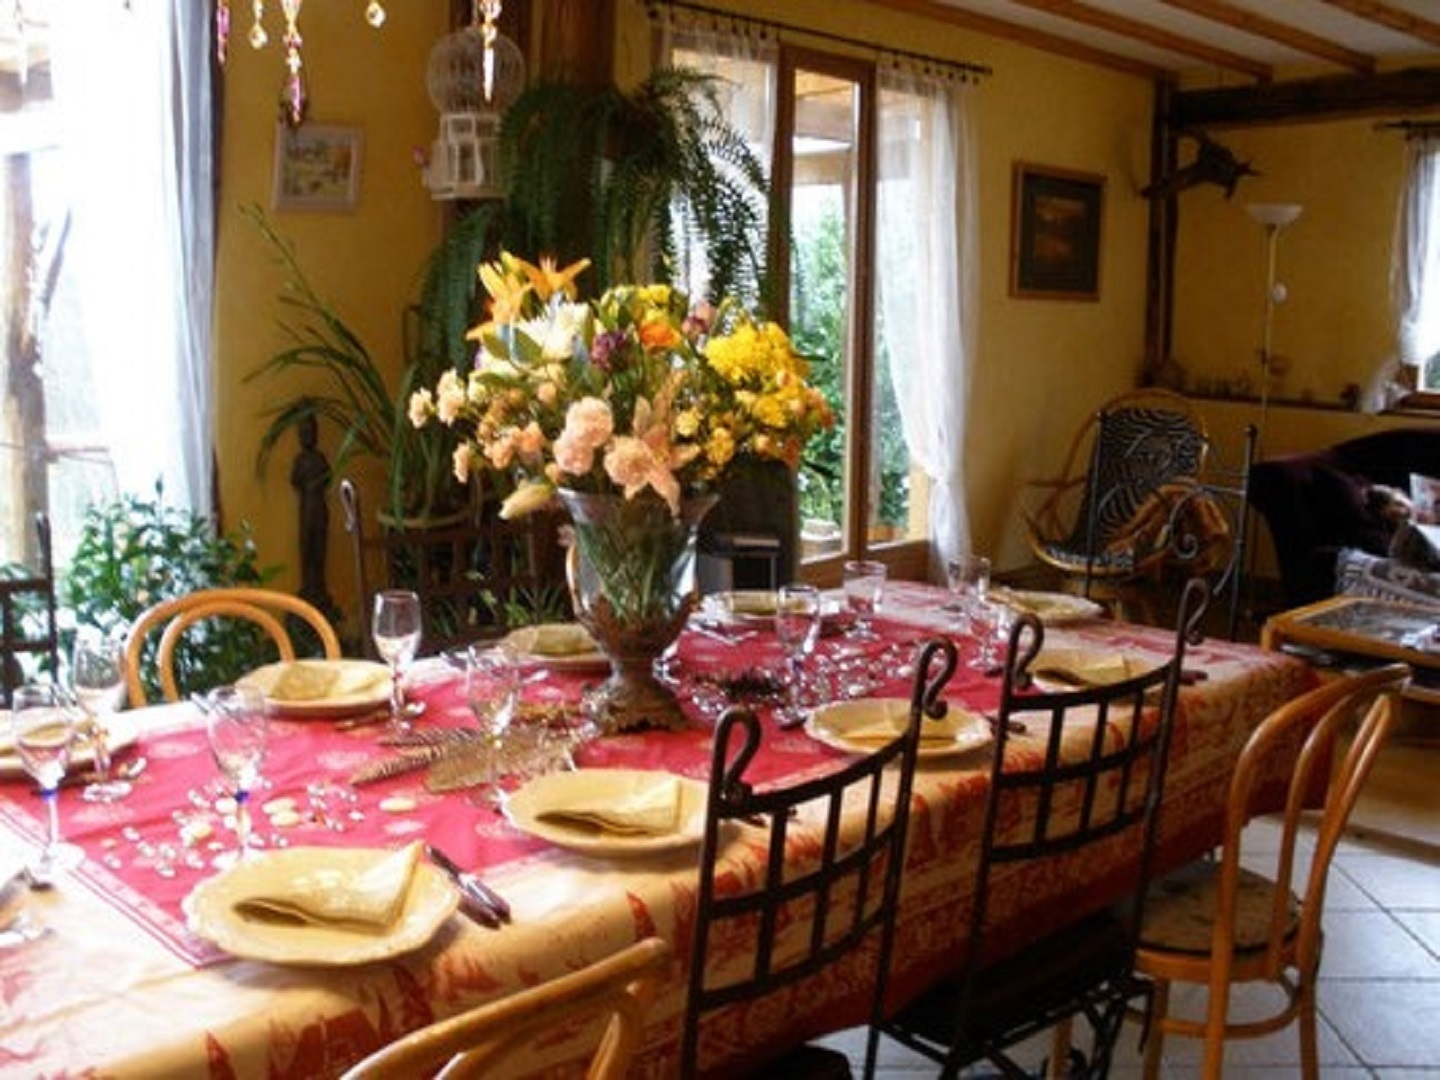 A room filled with furniture and vase of flowers on a table at La grange du rossignolet.